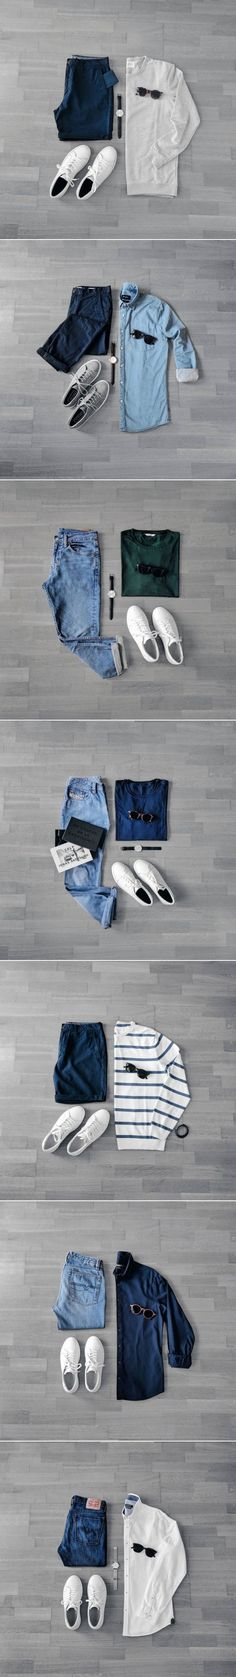 Coolest outfit ideas all men will love to wear. Let us know what you think in the comments.